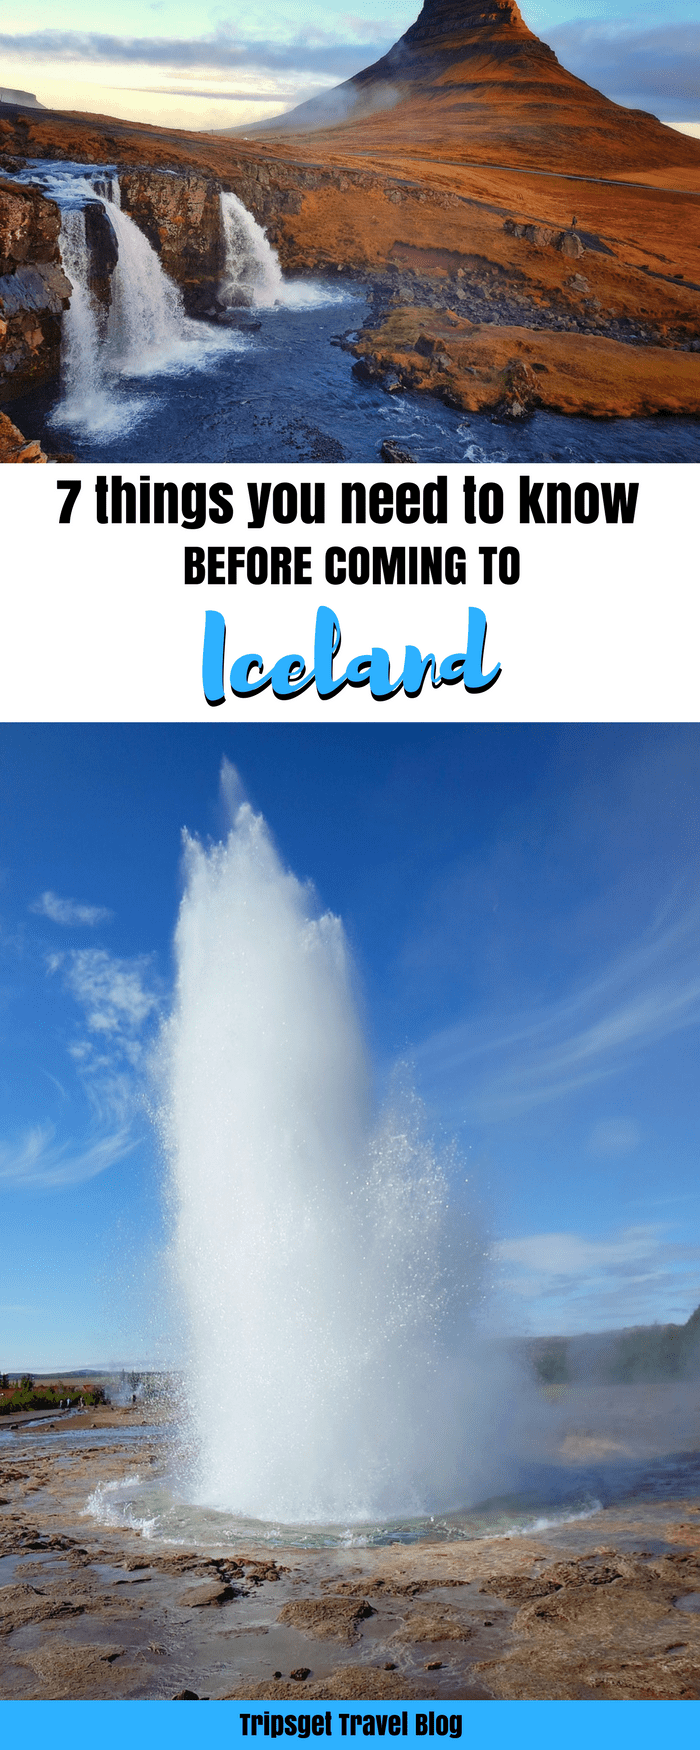 Tips for traveling to Iceland: 7 things you need to know before going to Iceland